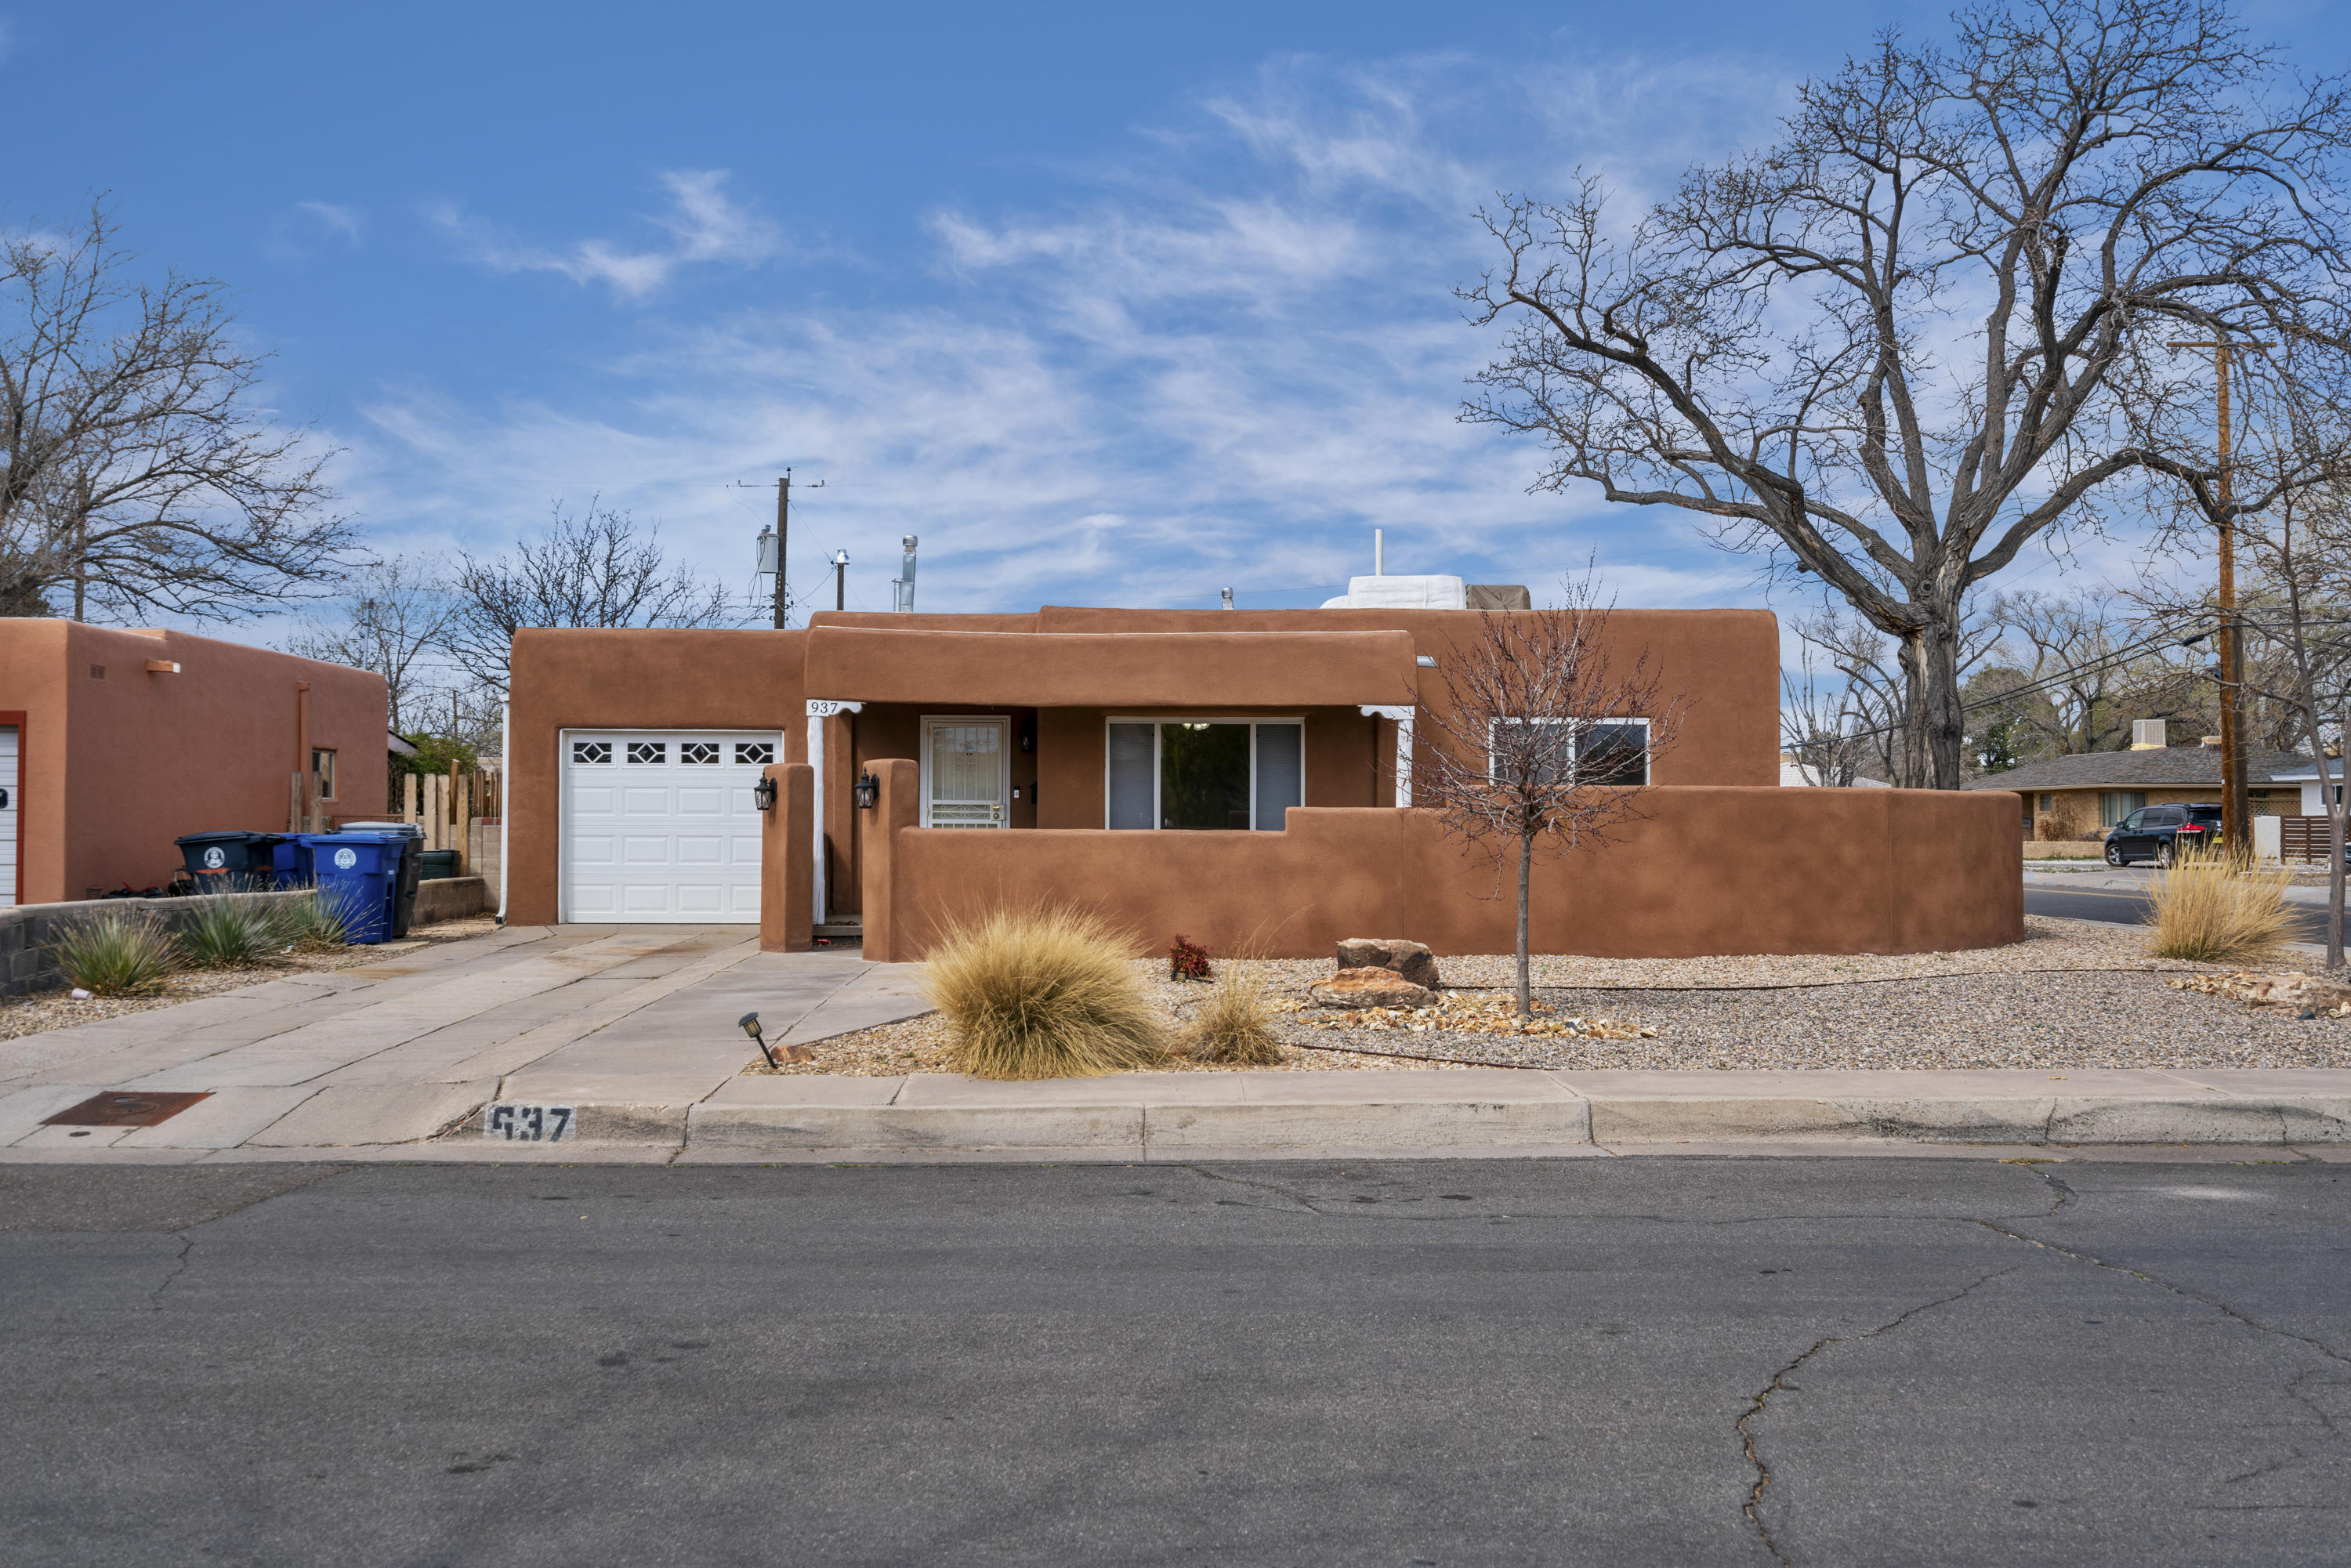 4 Bedroom 2 Bath 1 story large corner lot with alley access. Hardwood Floors, New TPO Roof 2019, New Stucco 2016, Fully landscaped with New Sprinkler system 2016.Updated vinyl windows. Courtyard view of the Sandia's. Professionally  maintained home.